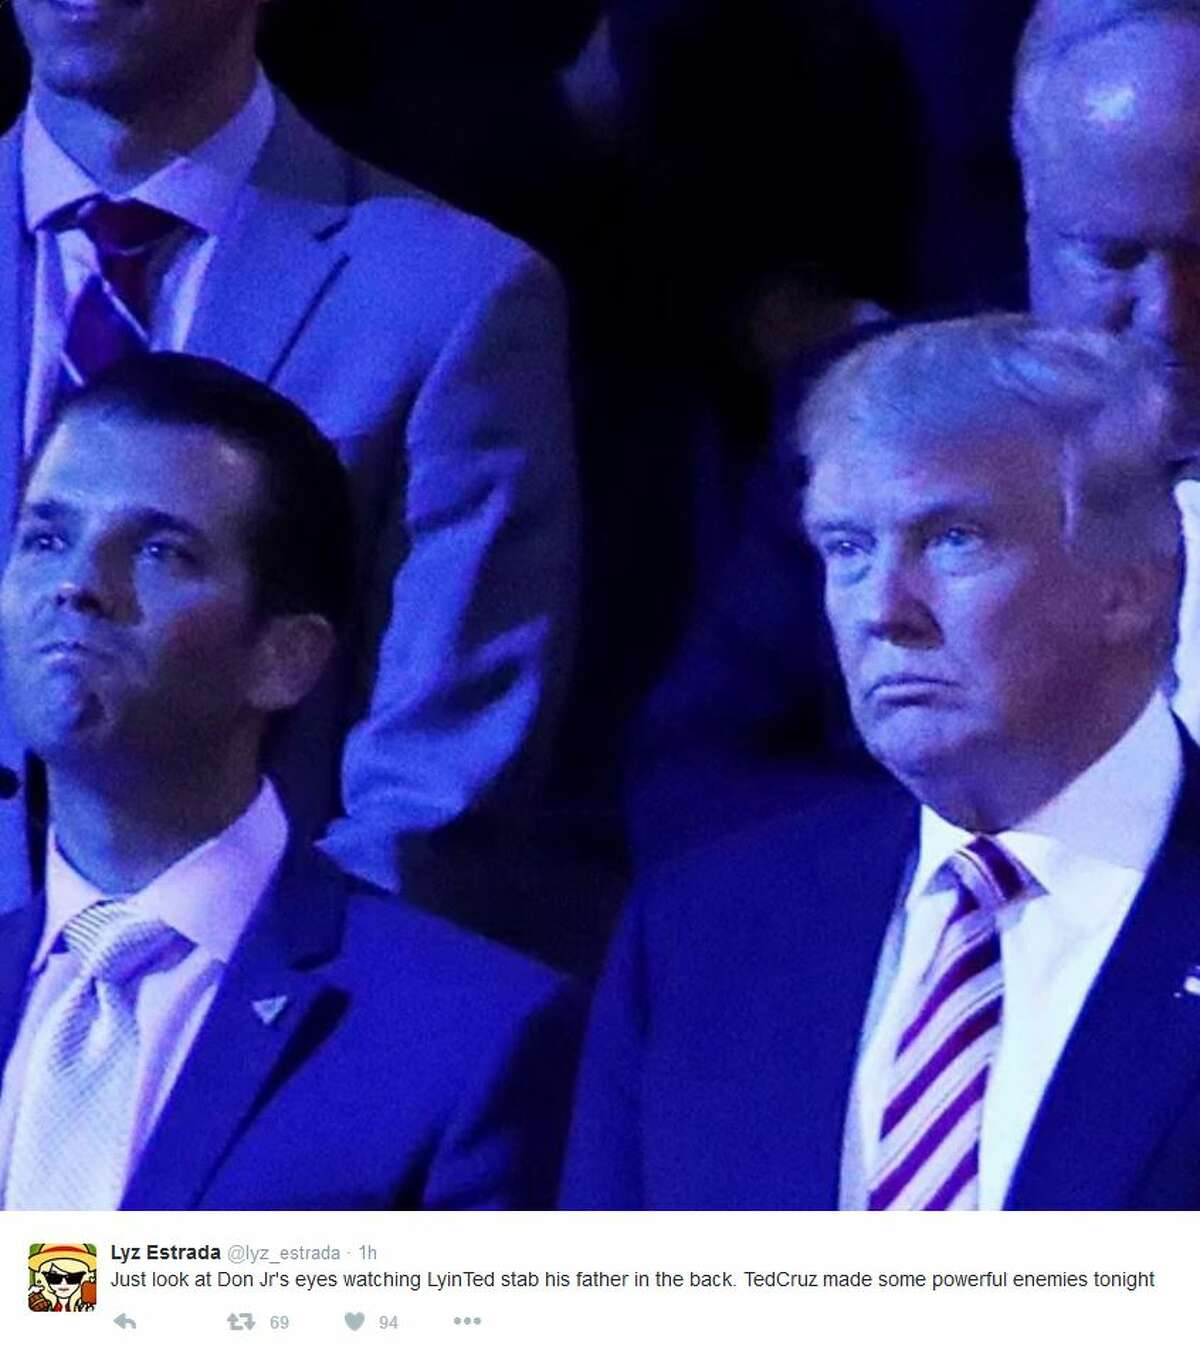 Just look at Don Jr's eyes watching Lyin' Ted stab his father in the back. Ted Cruz made some powerful enemies tonight. #RNCinCLE